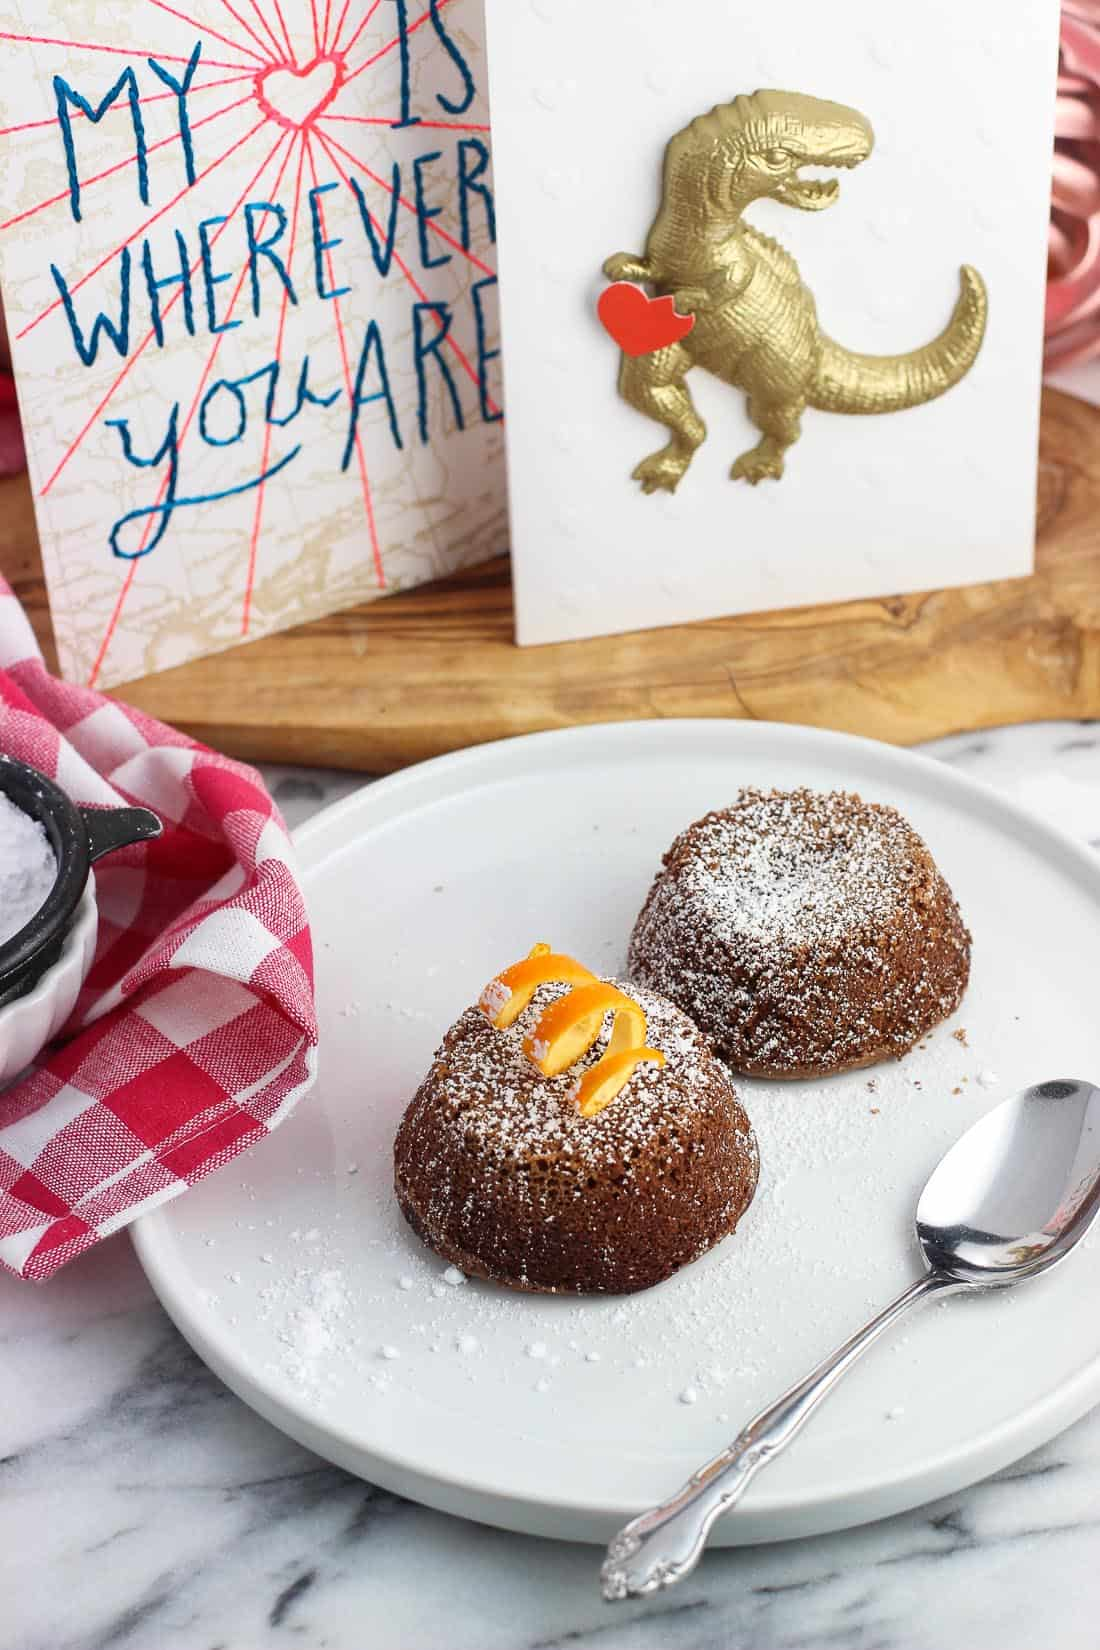 Two whole lava cakes on a plate, dusted with confectioners' sugar, with one topped with an orange peel twist. There's a spoon on the plate and two Valentine's Day cards are displayed in the background